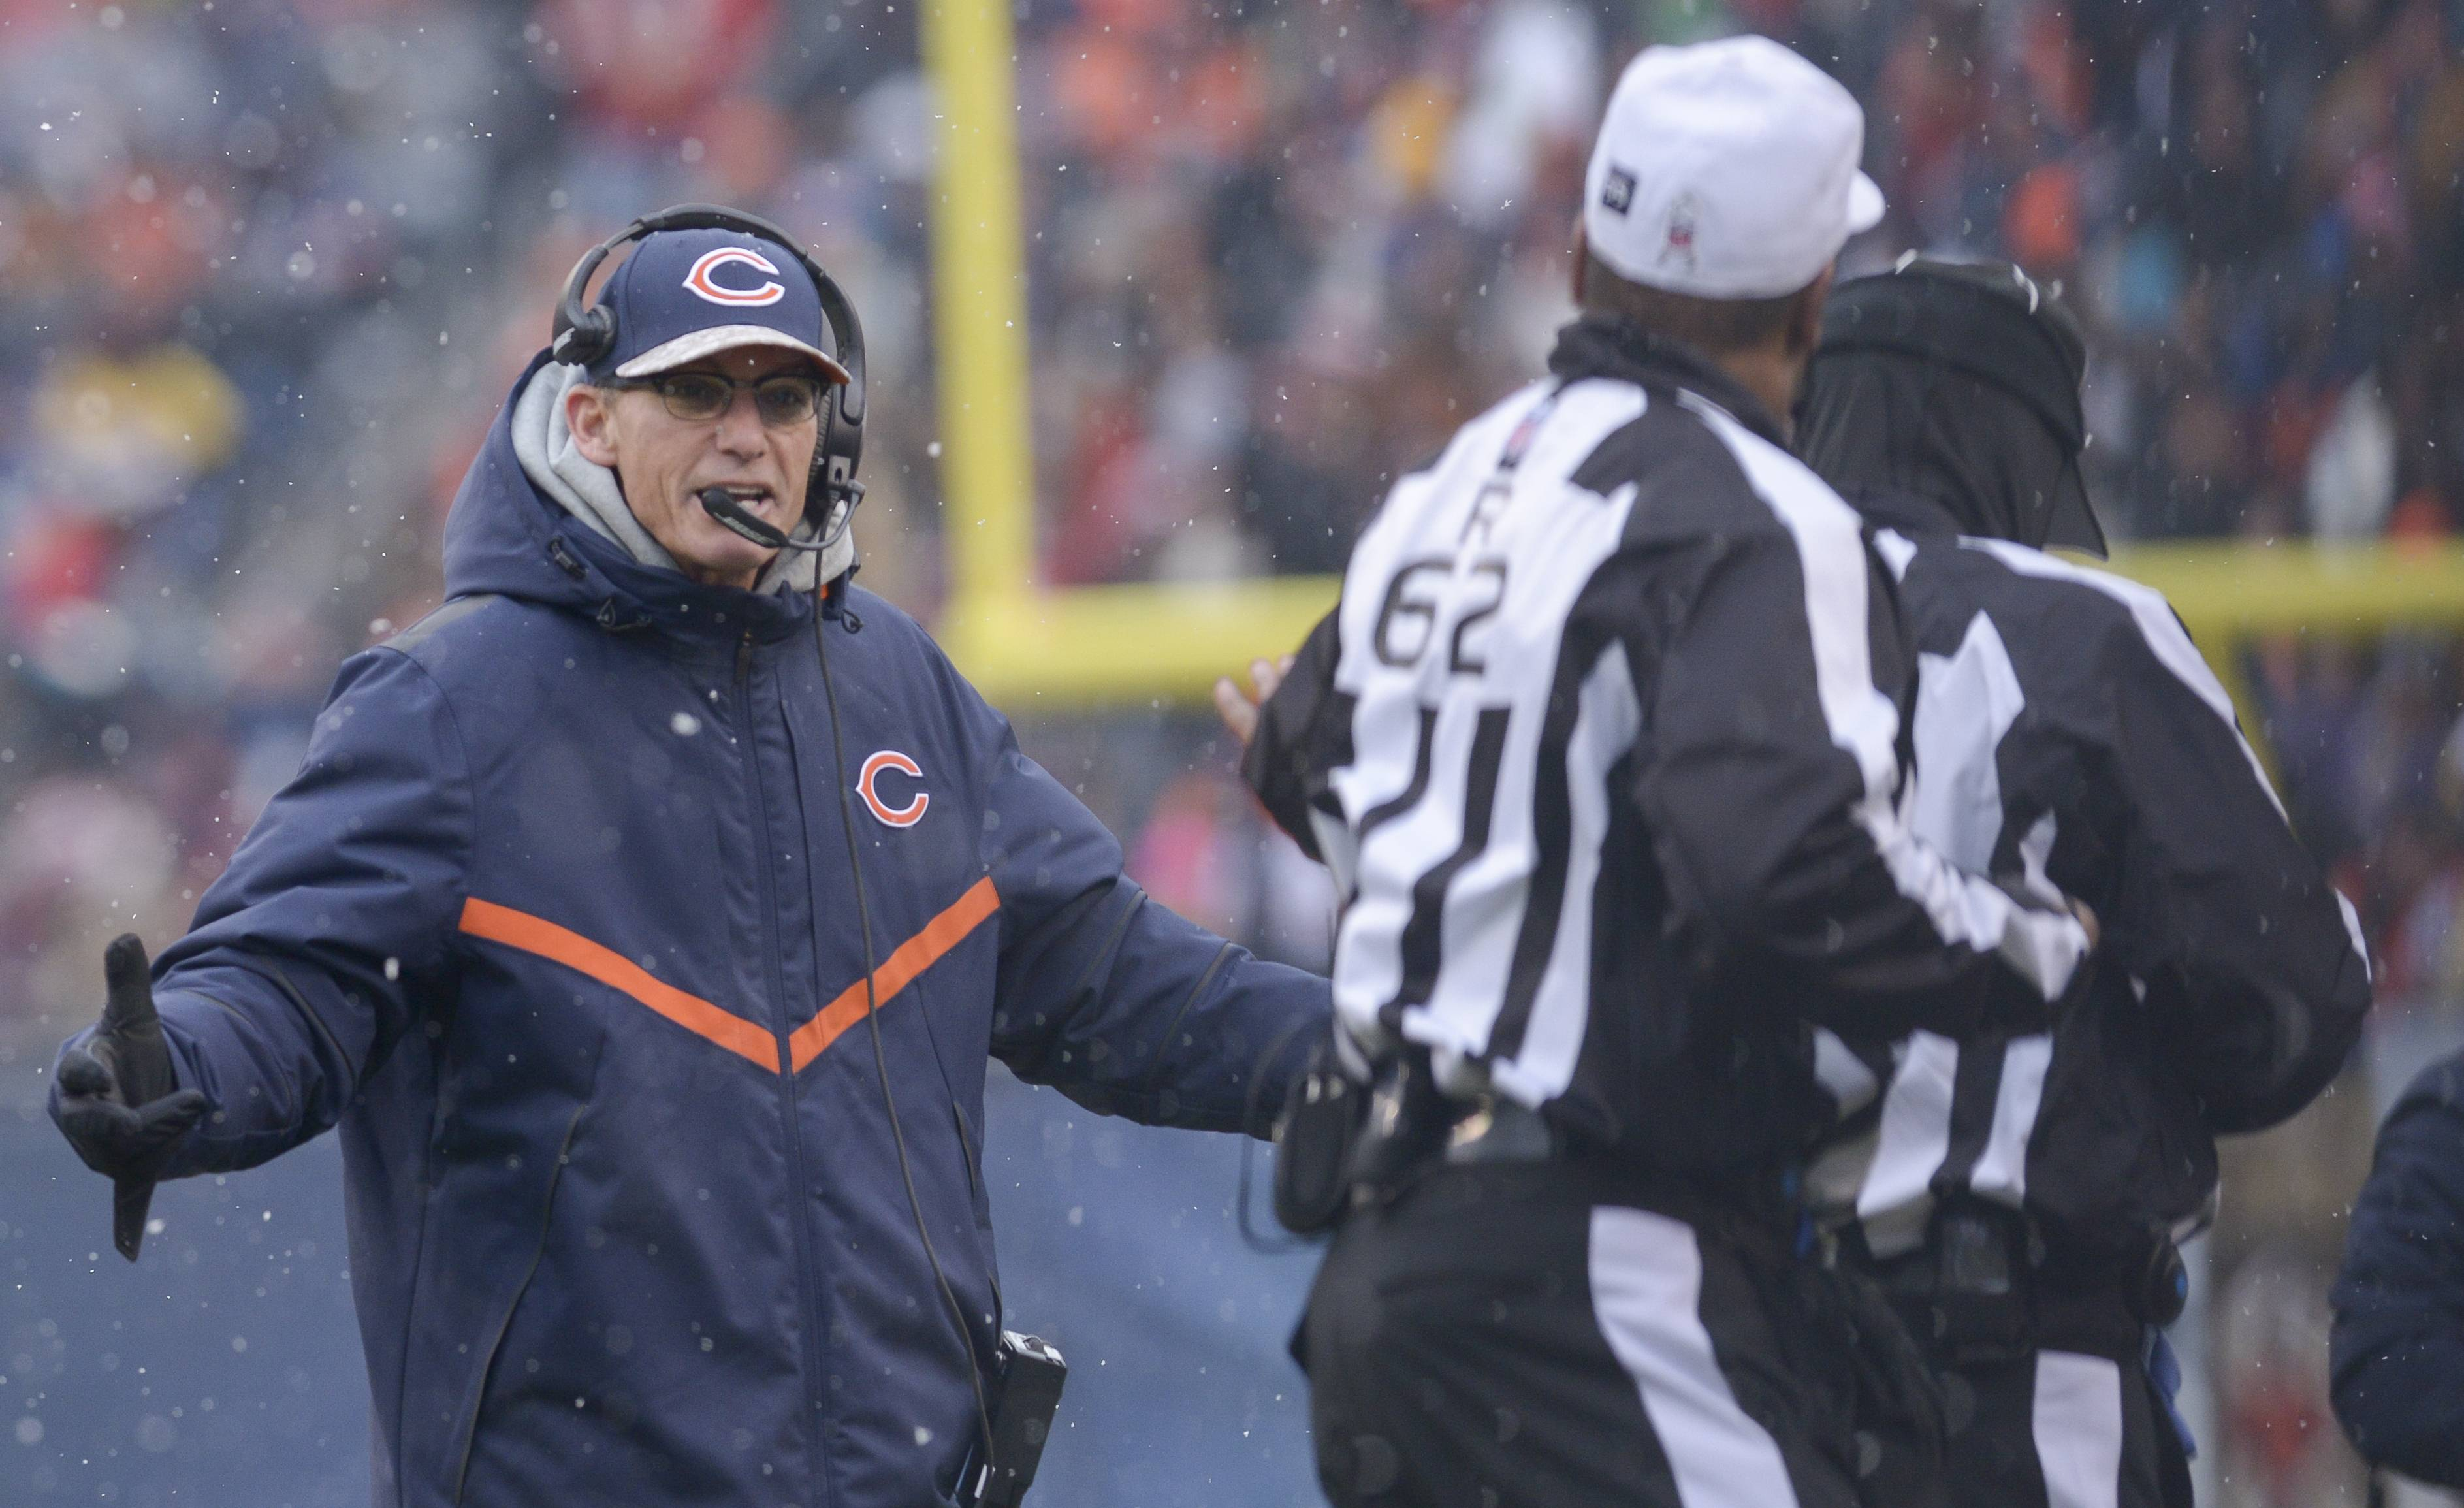 Chicago Bears Head Coach Marc Trestman speaks with officials during Sunday's game against the Minnesota Vikings at Soldier Field in Chicago.